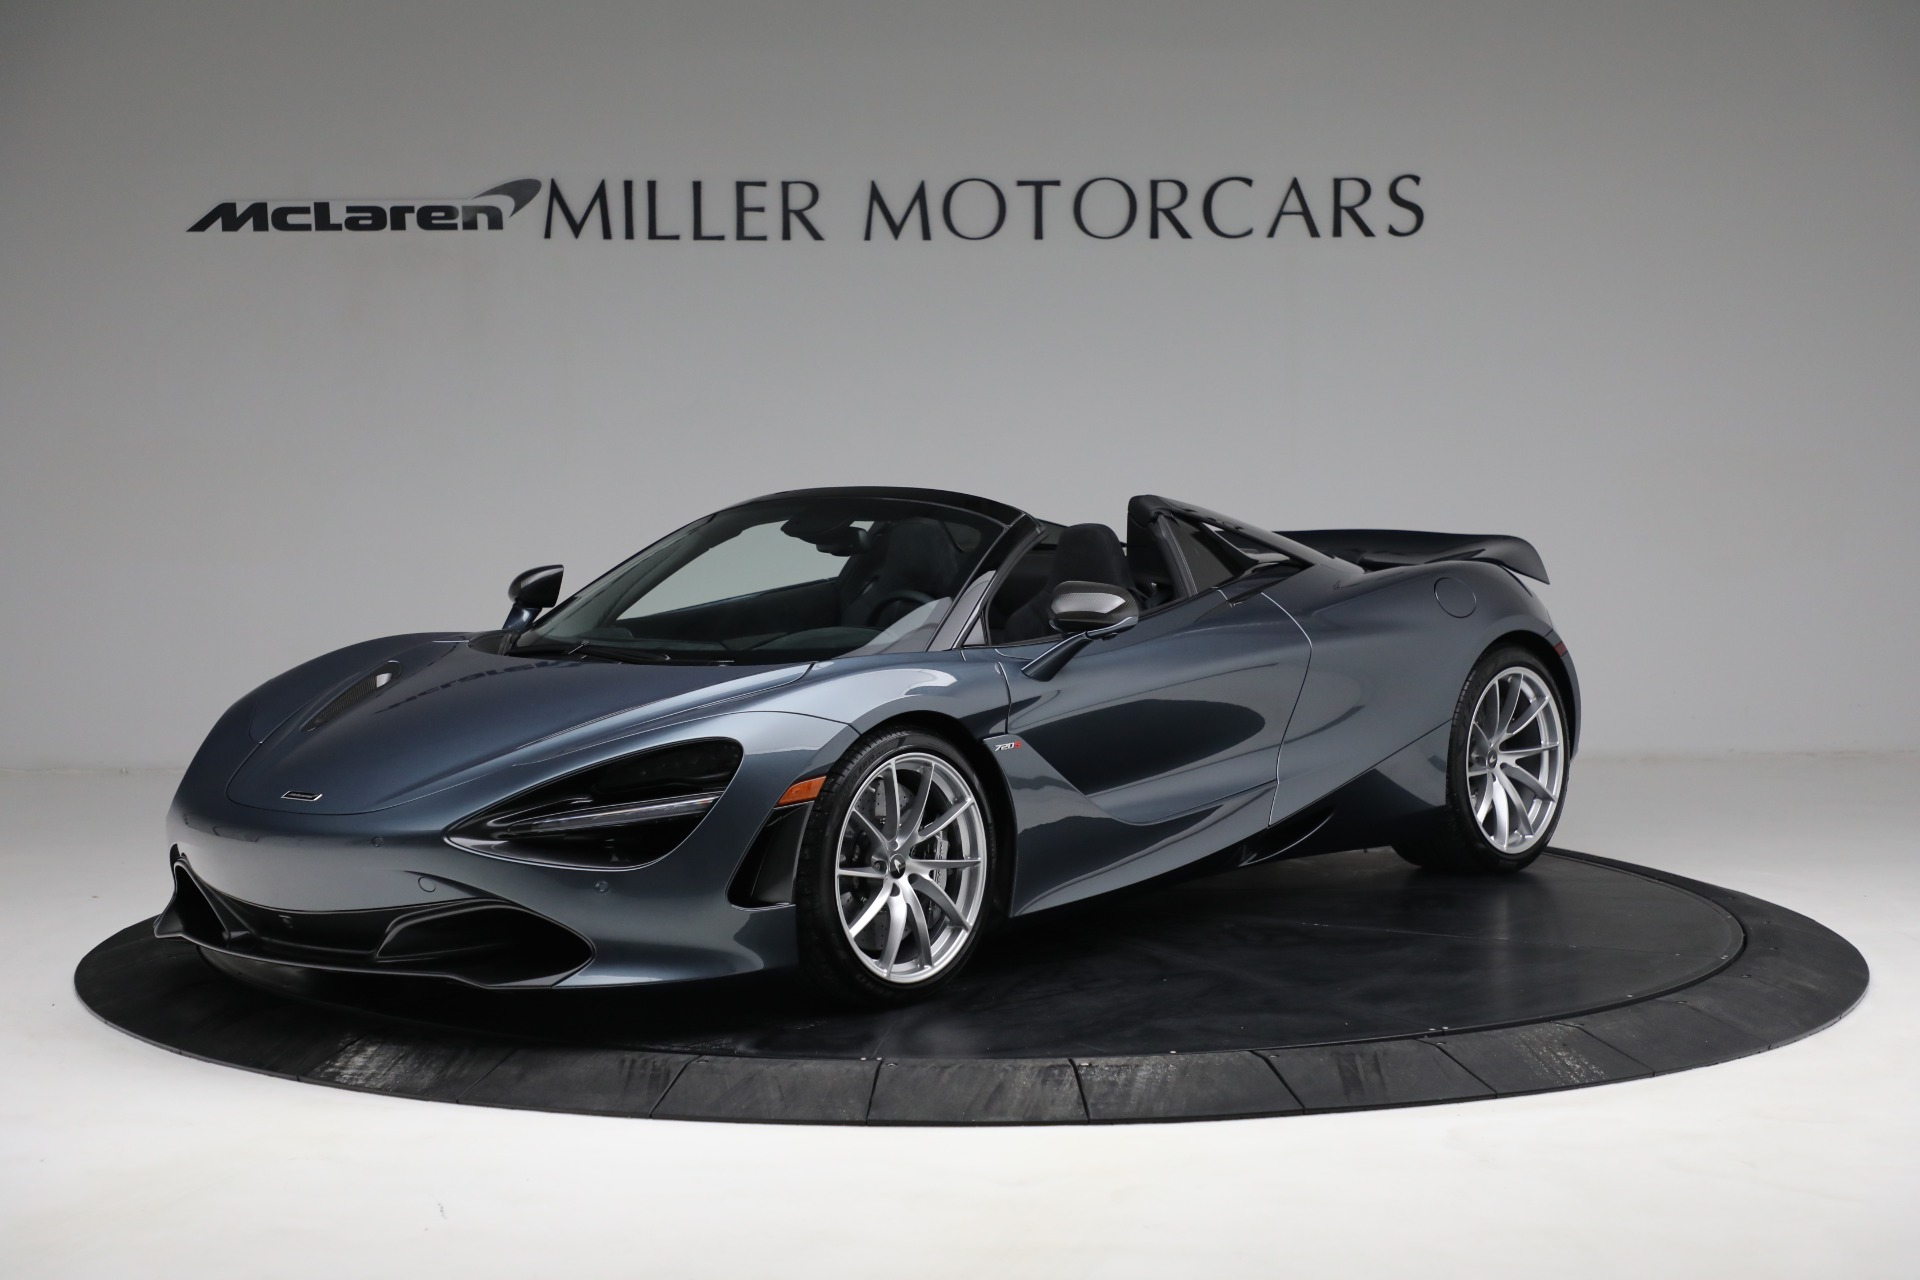 Used 2020 McLaren 720S Spider for sale $349,900 at Rolls-Royce Motor Cars Greenwich in Greenwich CT 06830 1